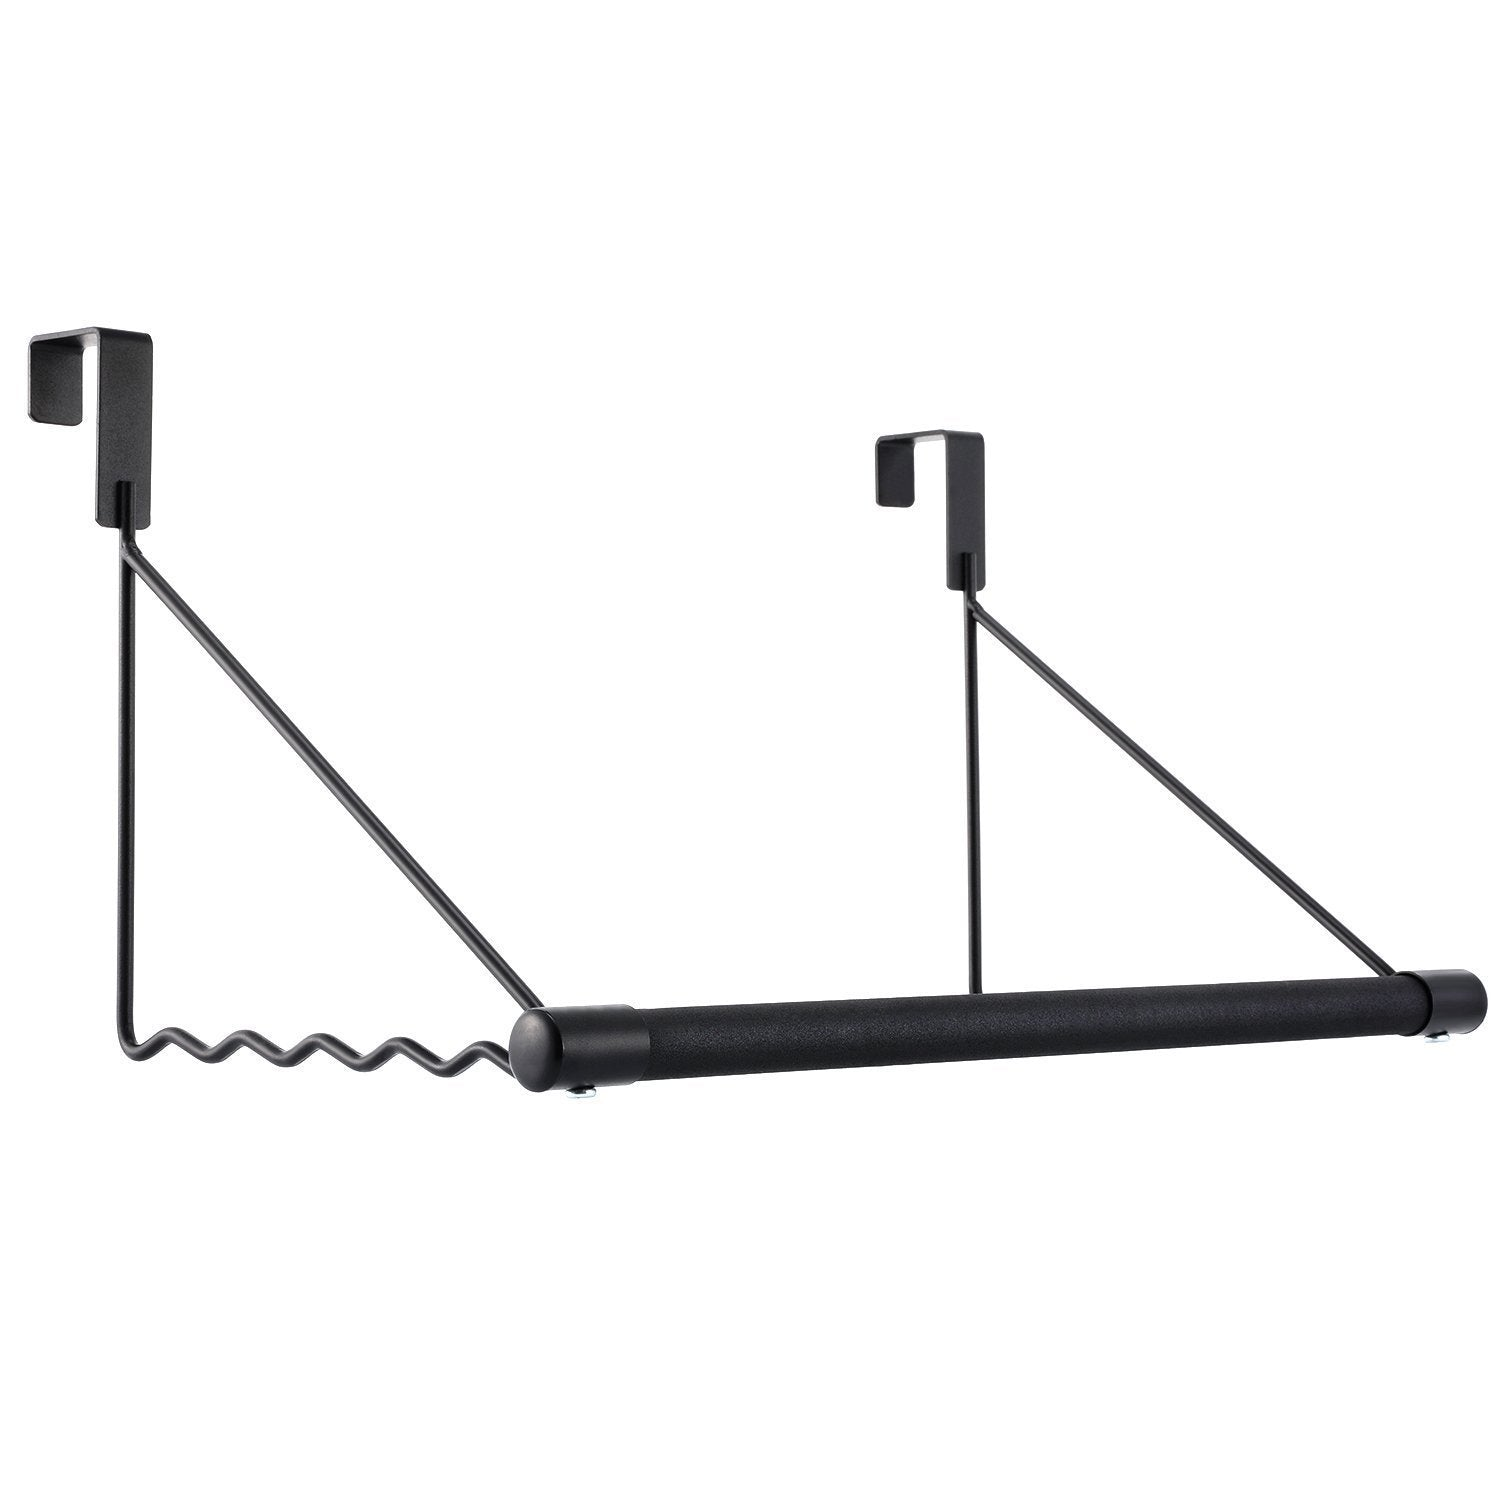 Magicfly Over The Door Closet Rod, Heavy-Duty Over The Door Hanger Rack with Hanging Bar for Coat, Towels Holder, Freshly Ironed Clothes, Black